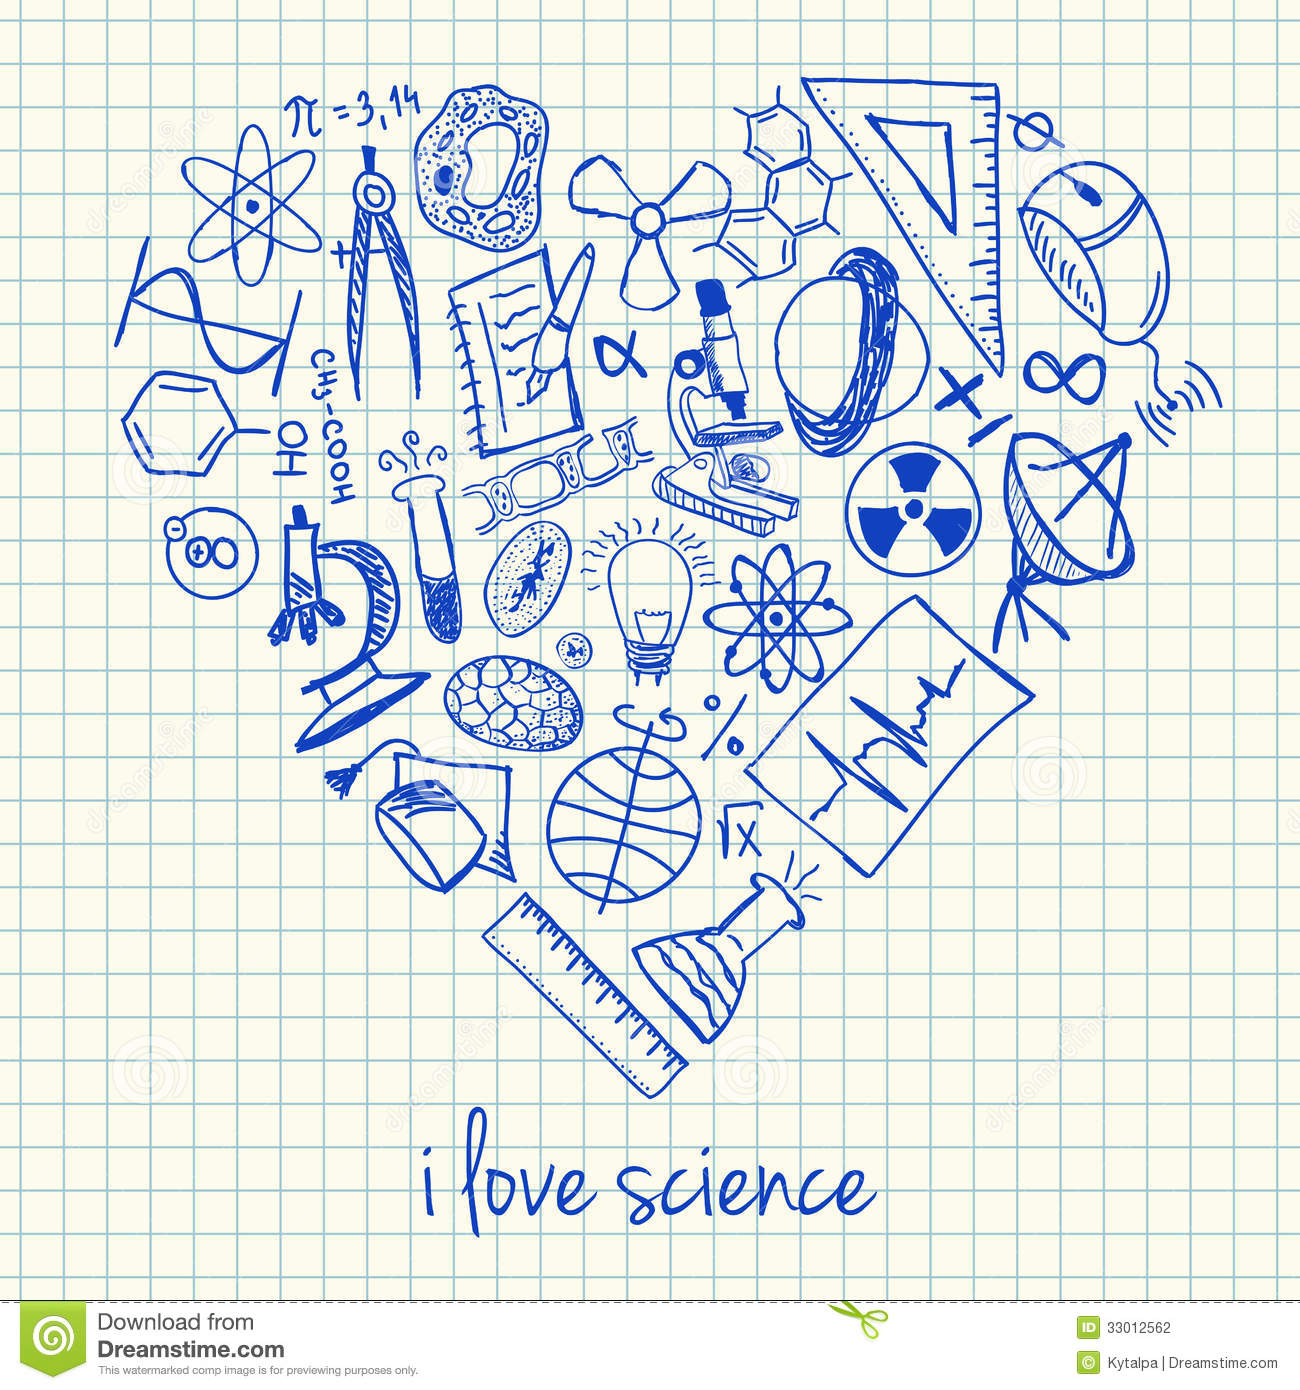 Science Drawings In Heart Shape Stock Photography - Image: 33012562